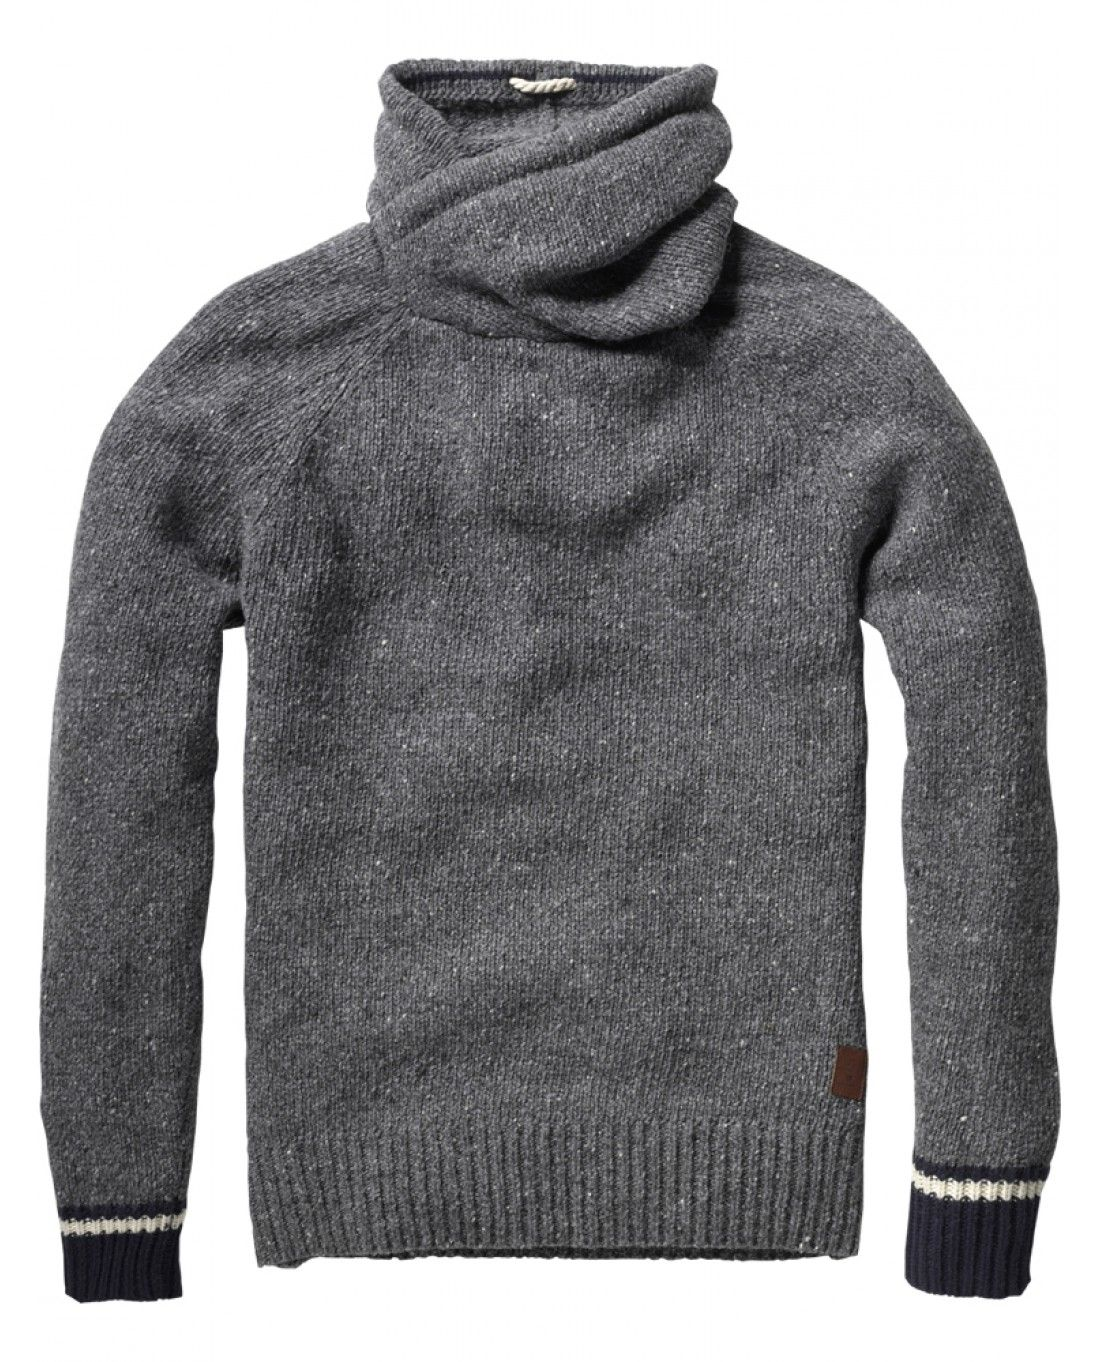 NAPS YARN PULL WITH TWISTED HOOD AND CONTRASTING CUFFS